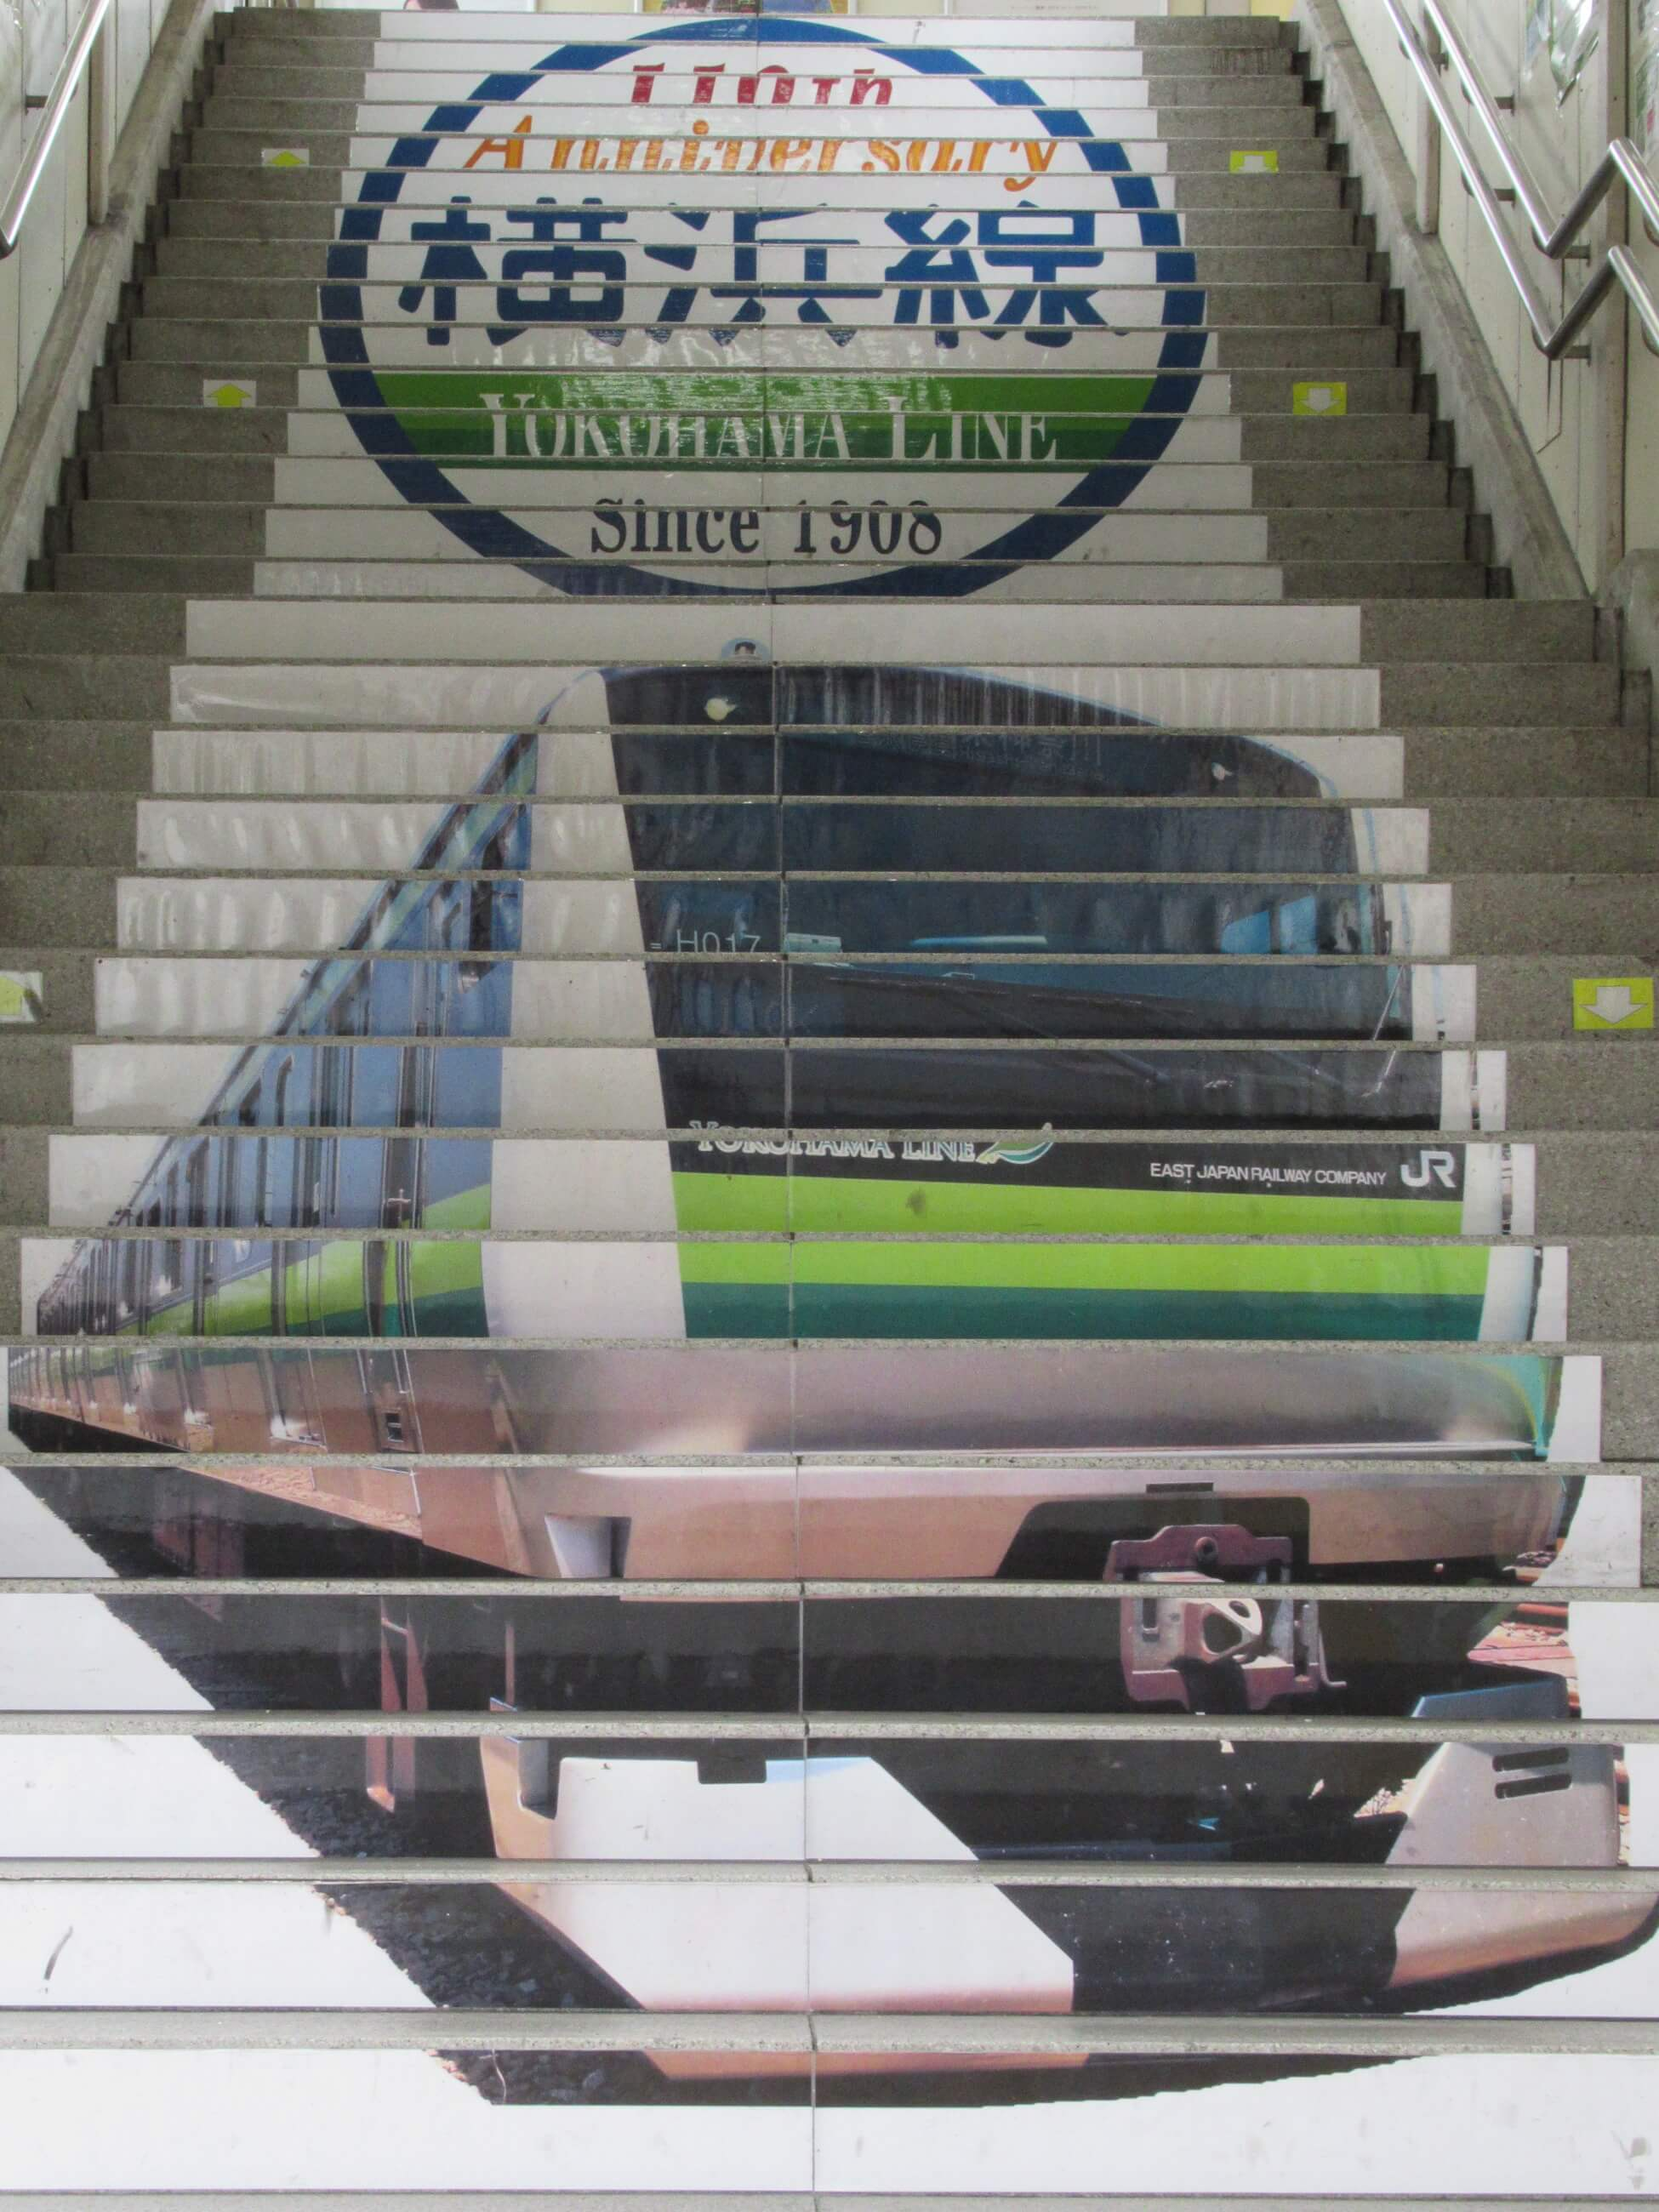 A picture of the stairs at Higashi Kanagawa station on the 110th anniversary of Yokohama Line